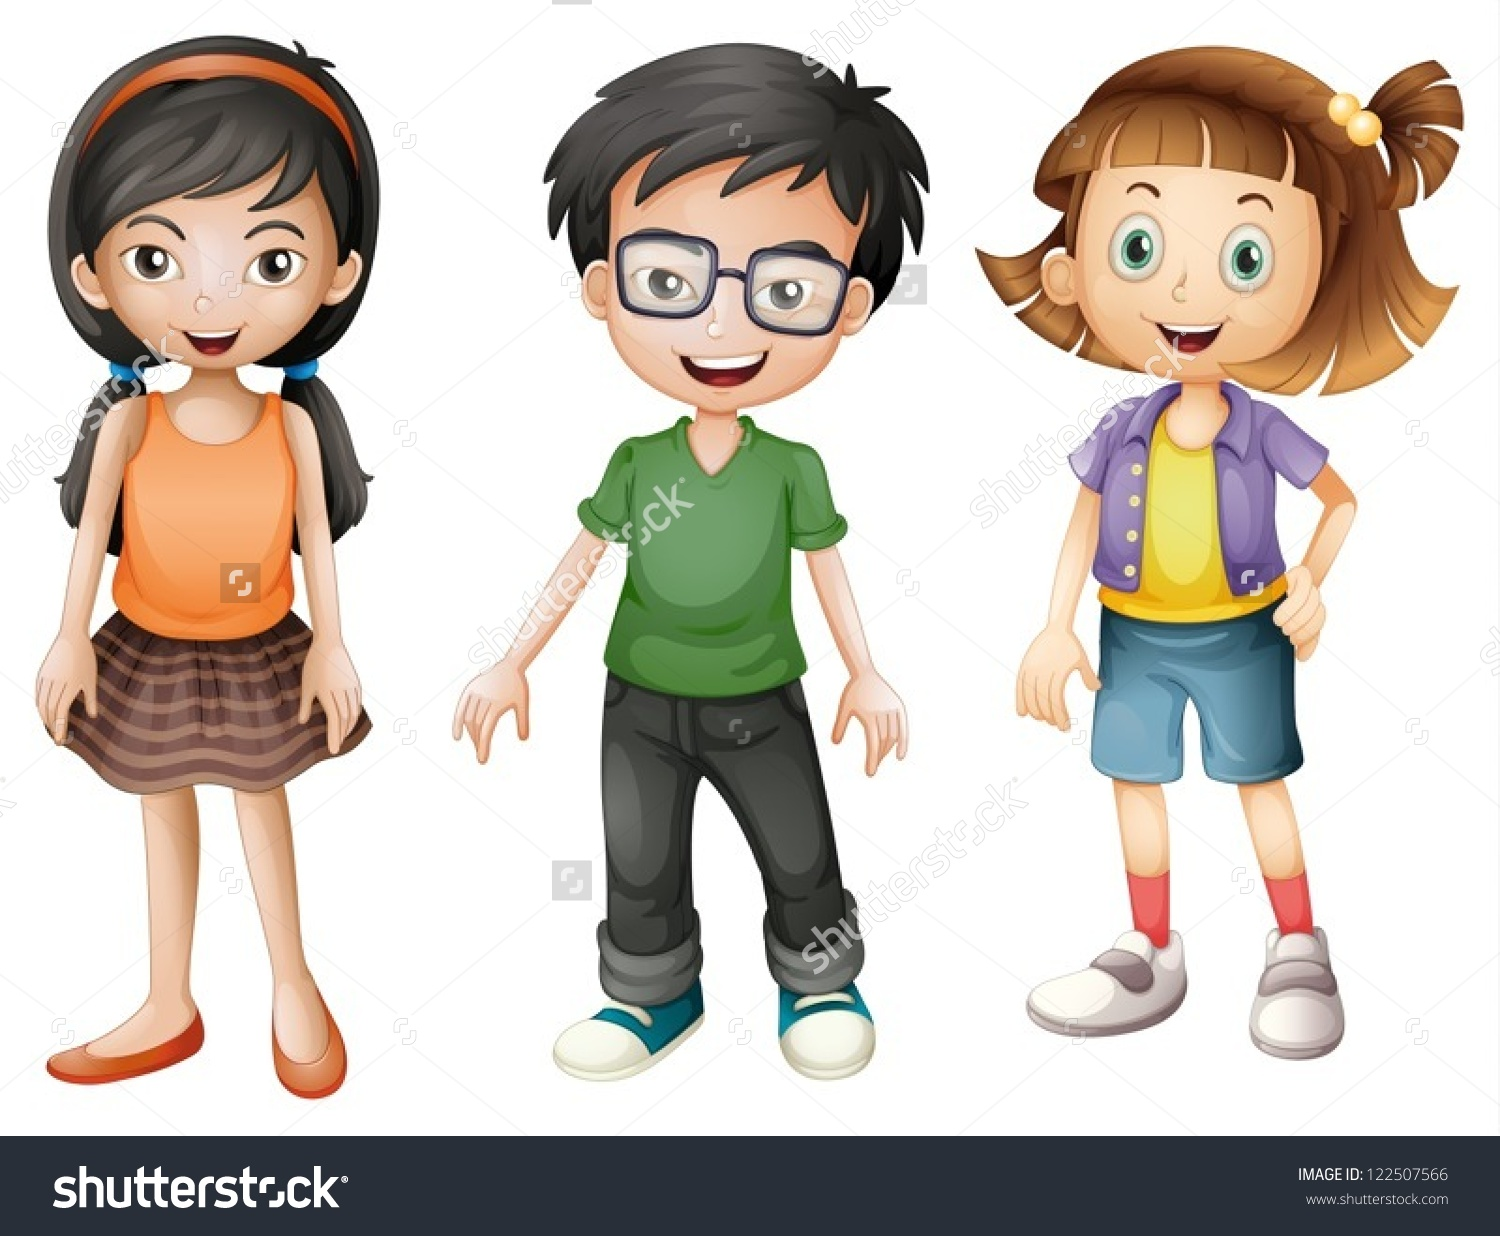 2 boys 1 girl clipart png freeuse download 2 boys 1 girl clipart - ClipartFest png freeuse download